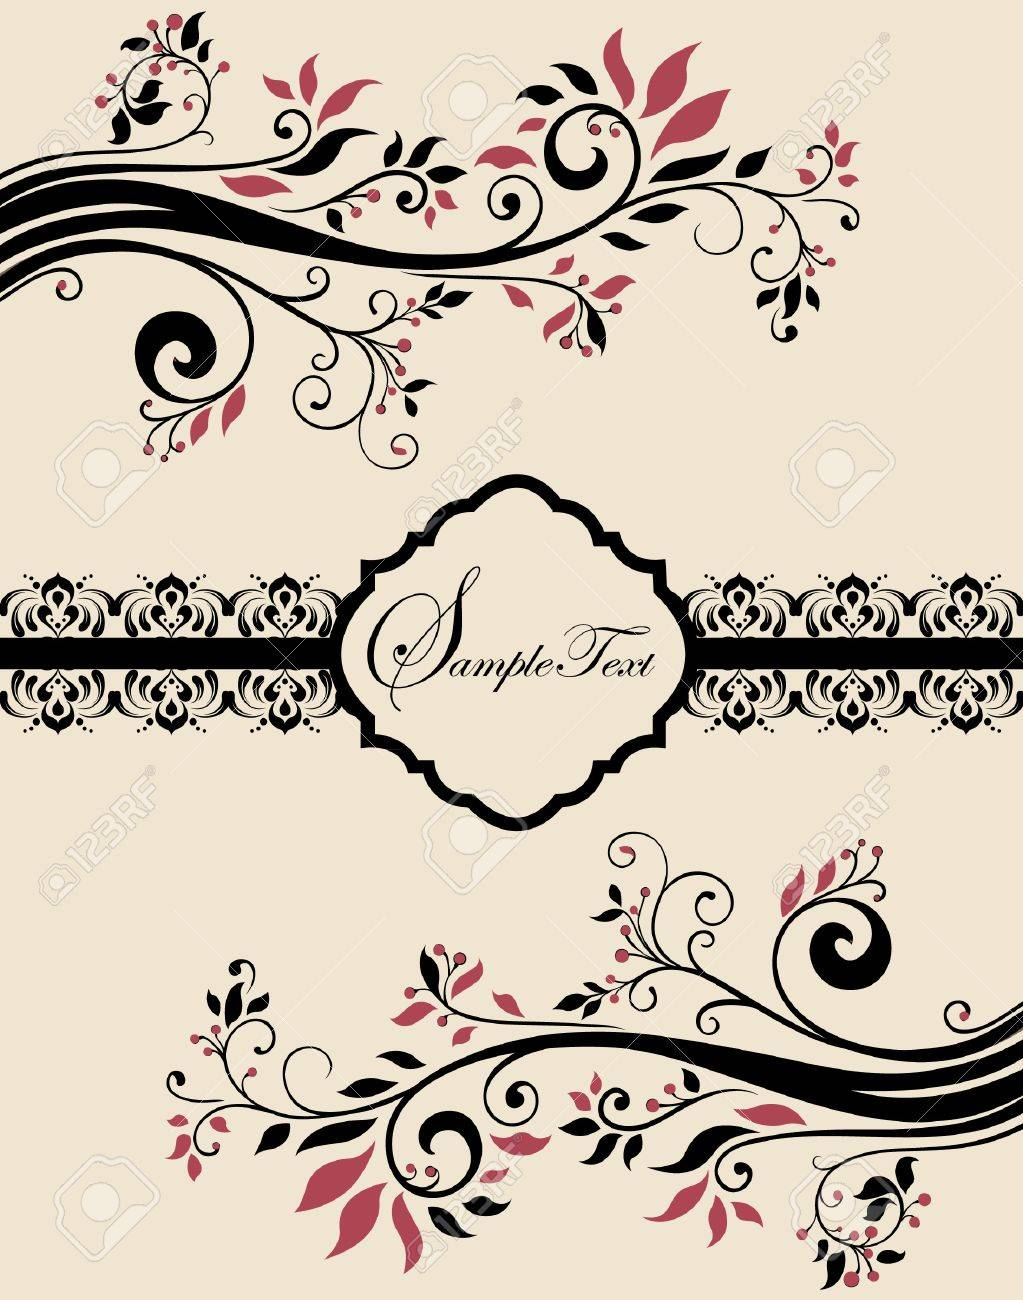 Wedding ornaments - Invitation Vintage Card With Floral Ornament Stock Vector 19313995